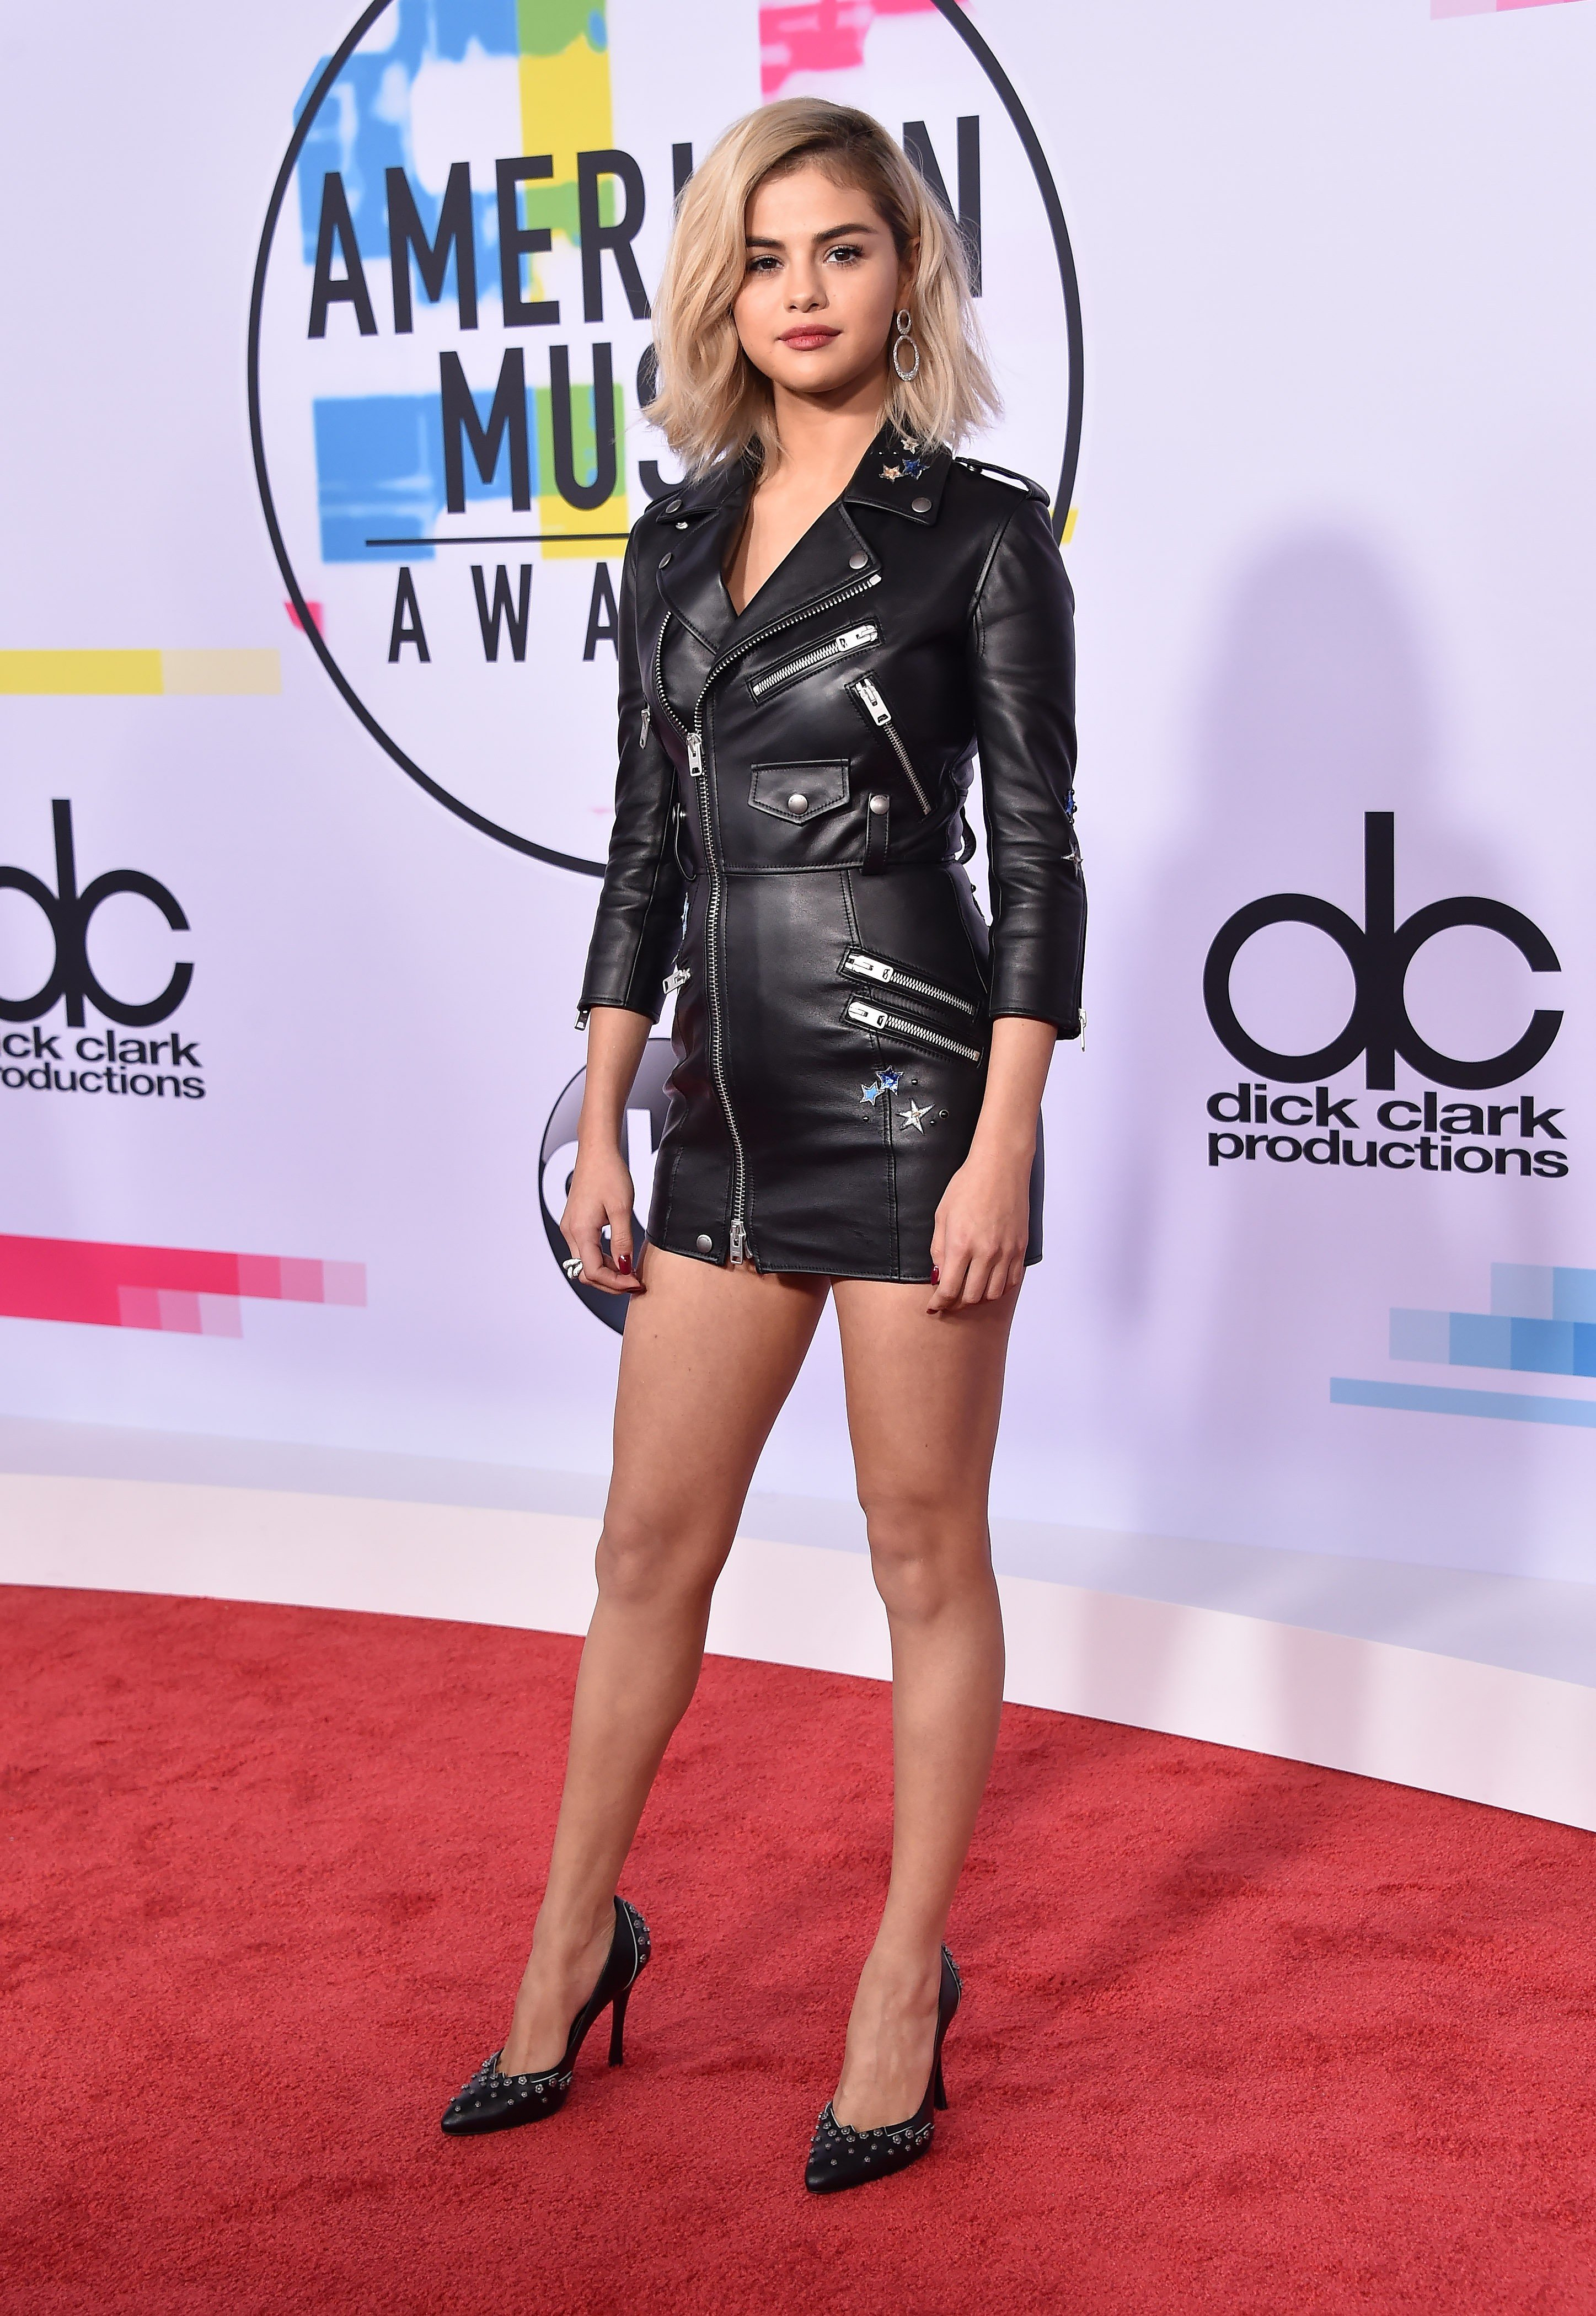 Selena Gomez Rocks A Custom Made Black Leather Mini Dress By Coach At The 2017 American Music Awards In Los Angeles November